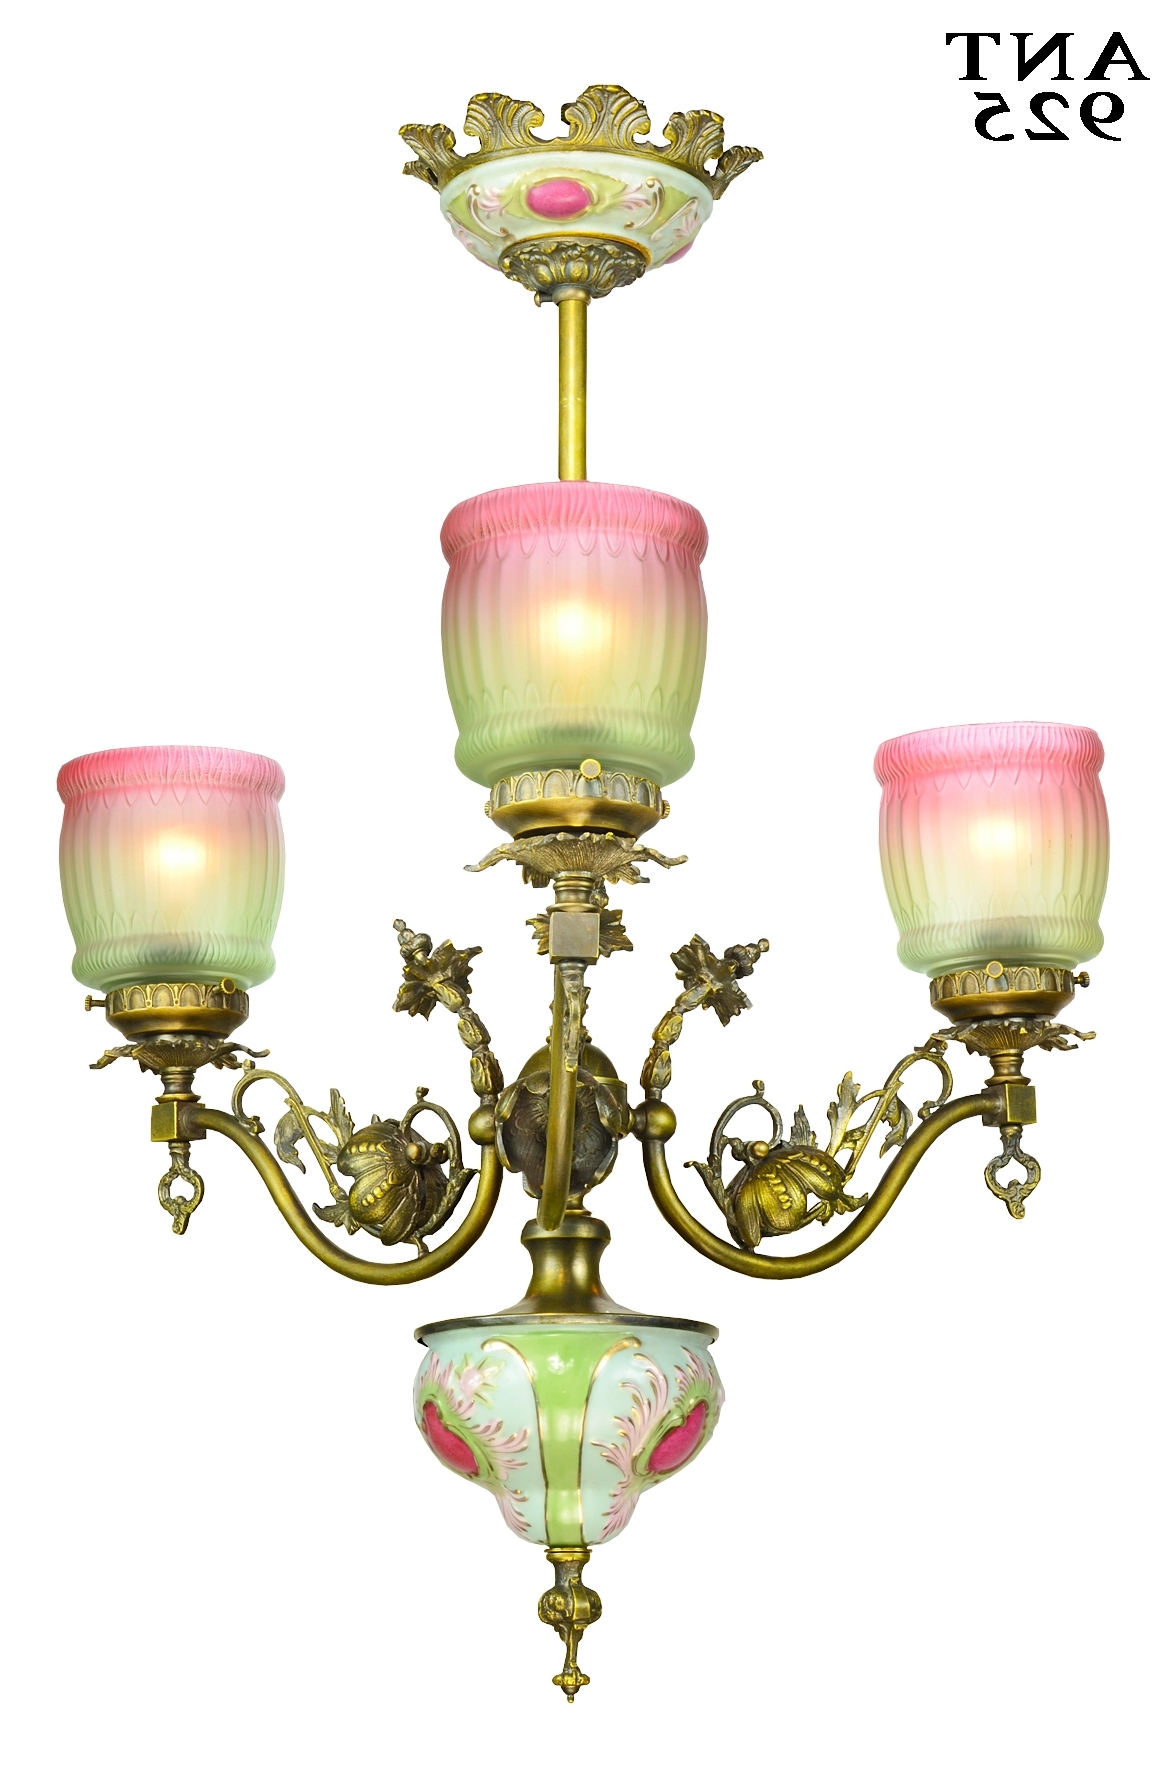 Edwardian Chandelier Intended For Famous Vintage Hardware & Lighting – Antiqued Brass Finished Fhree Light (View 7 of 20)